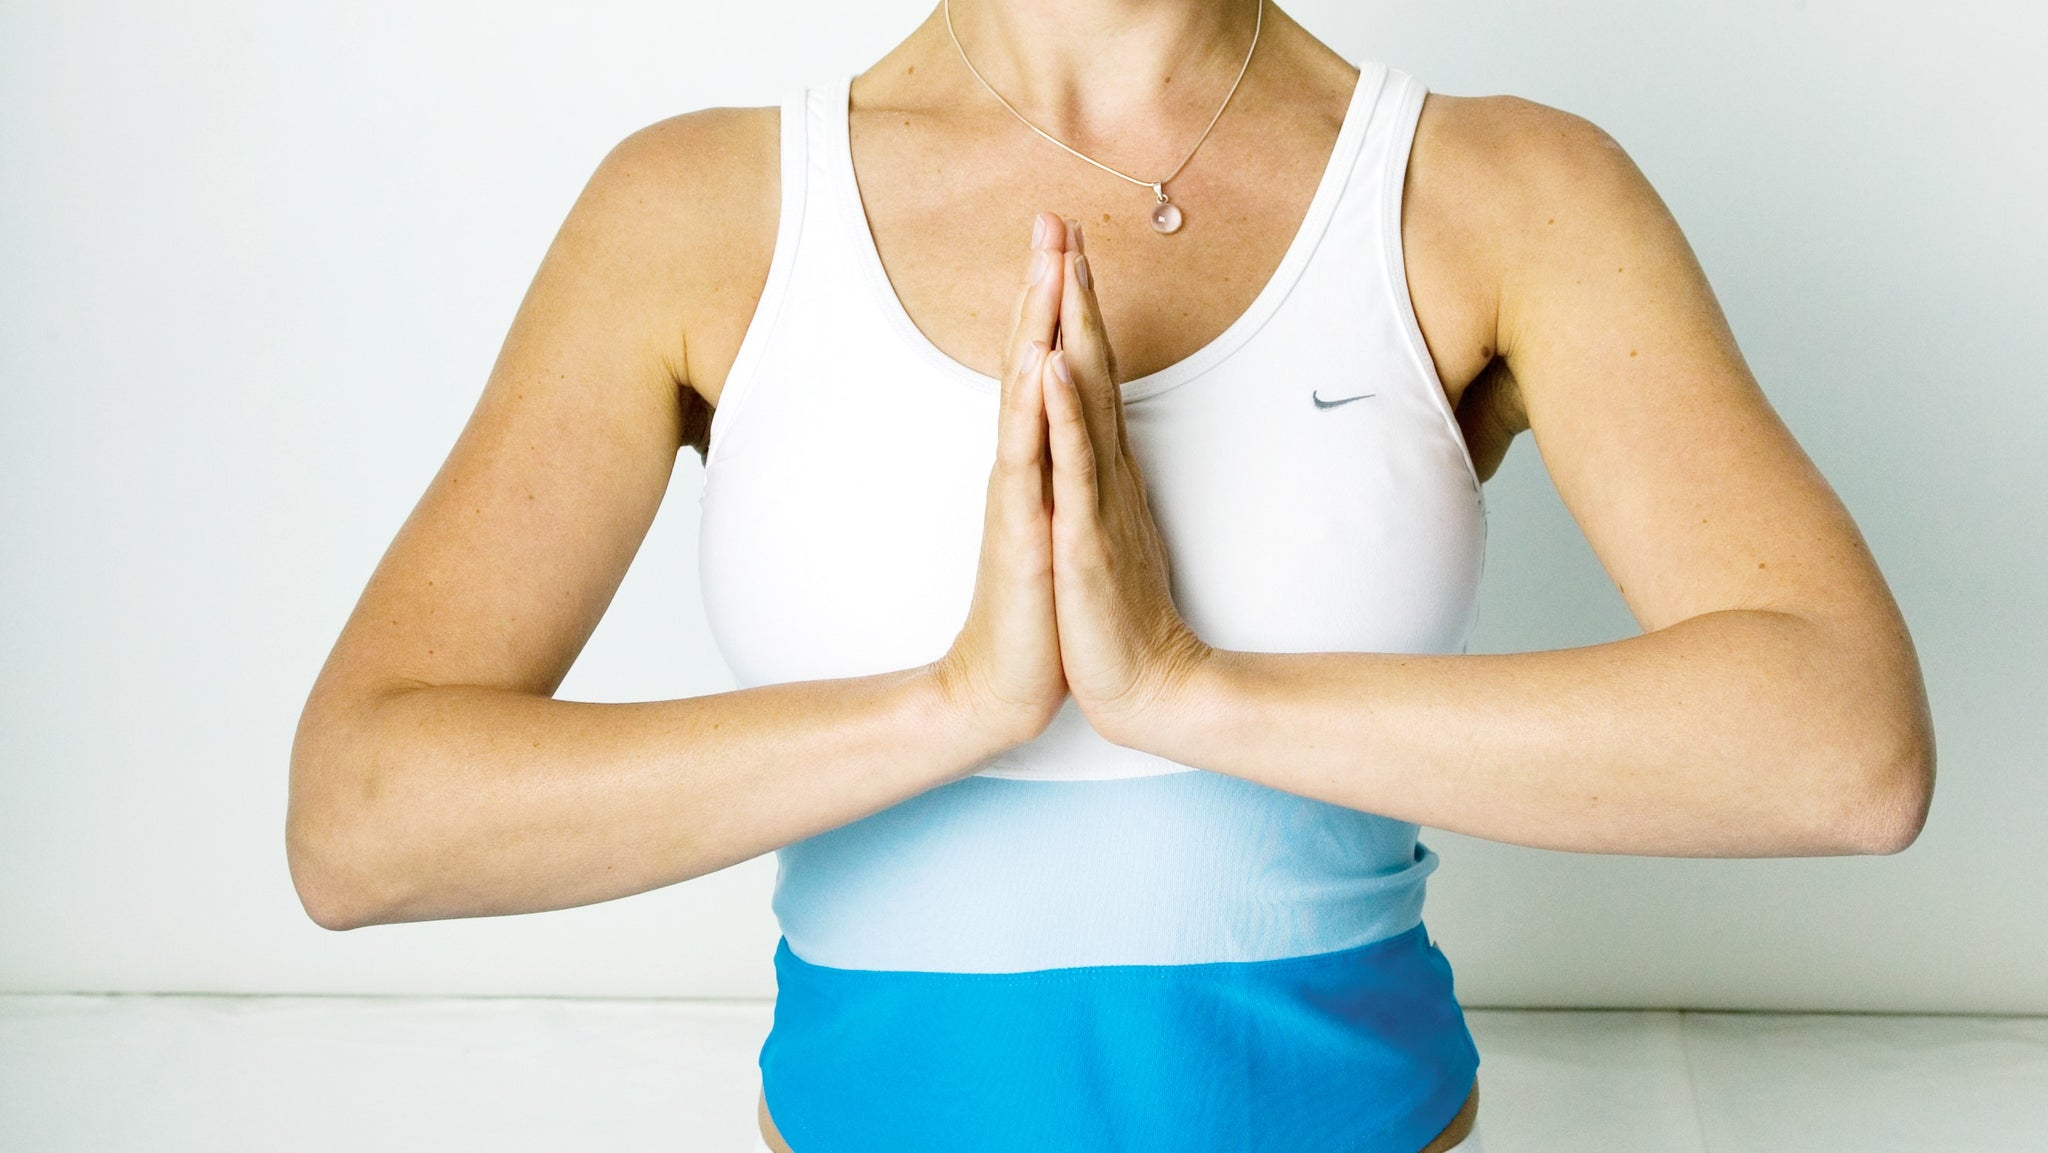 Prayer Position - Anjali Mudra - The Salutation Seal